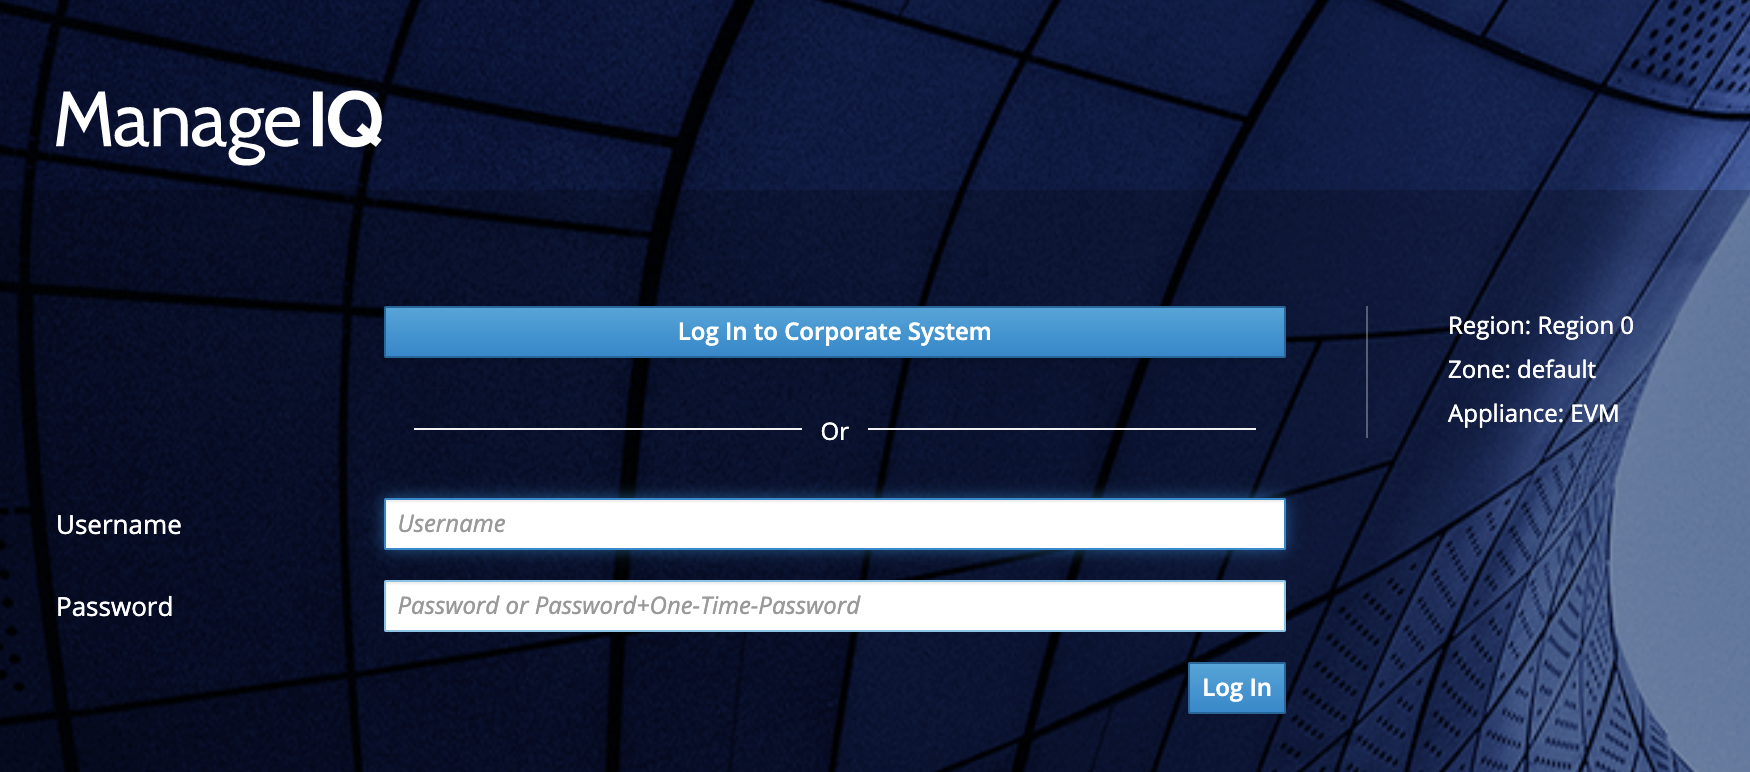 Screenshot showing the ManageIQ login screen with the button: